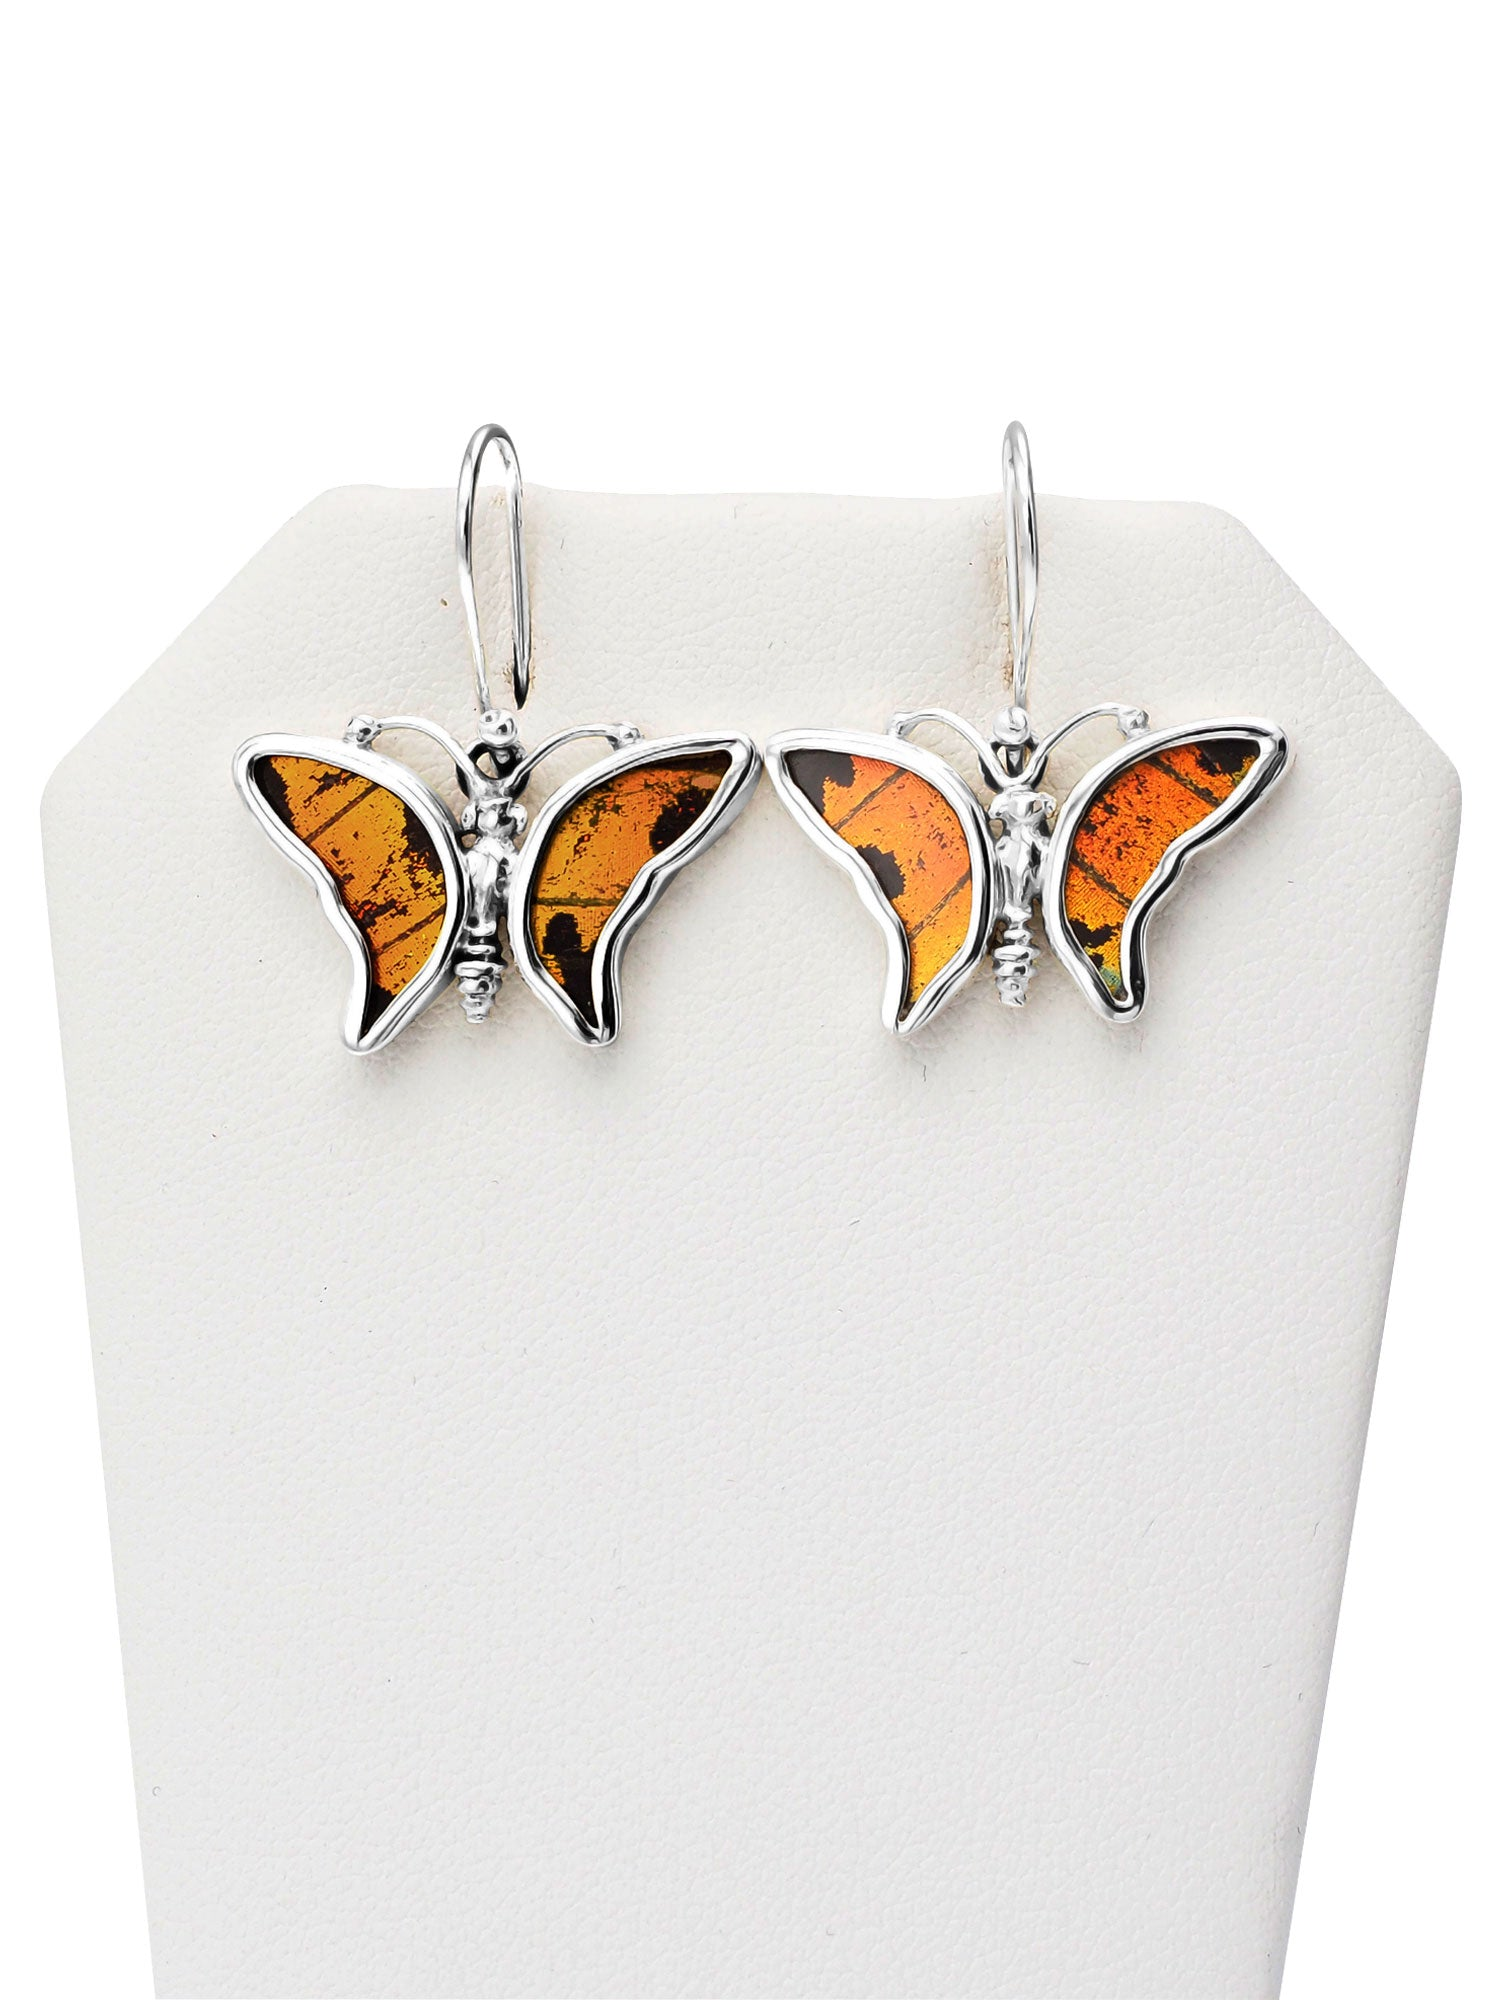 Charrie Butterfly Earrings, Inspirational Jewelry for Women - Quan Jewelry